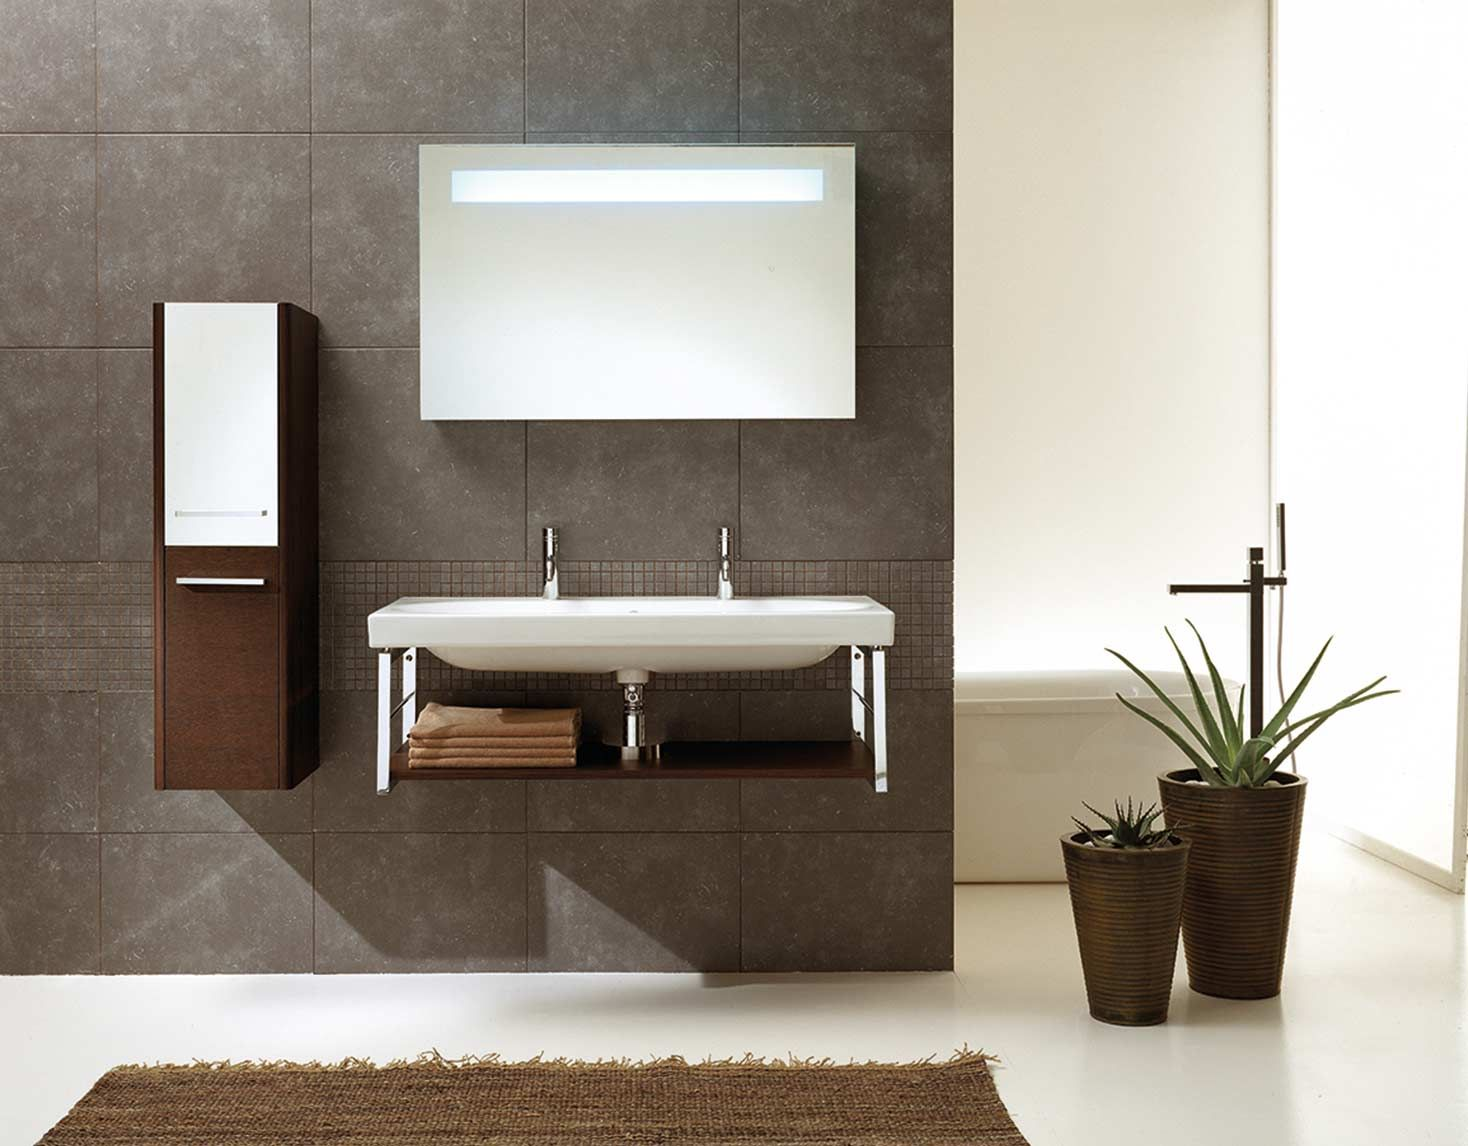 Berloni Bagno ~ Berloni bagno manhattan bathroom architecture bathrooms